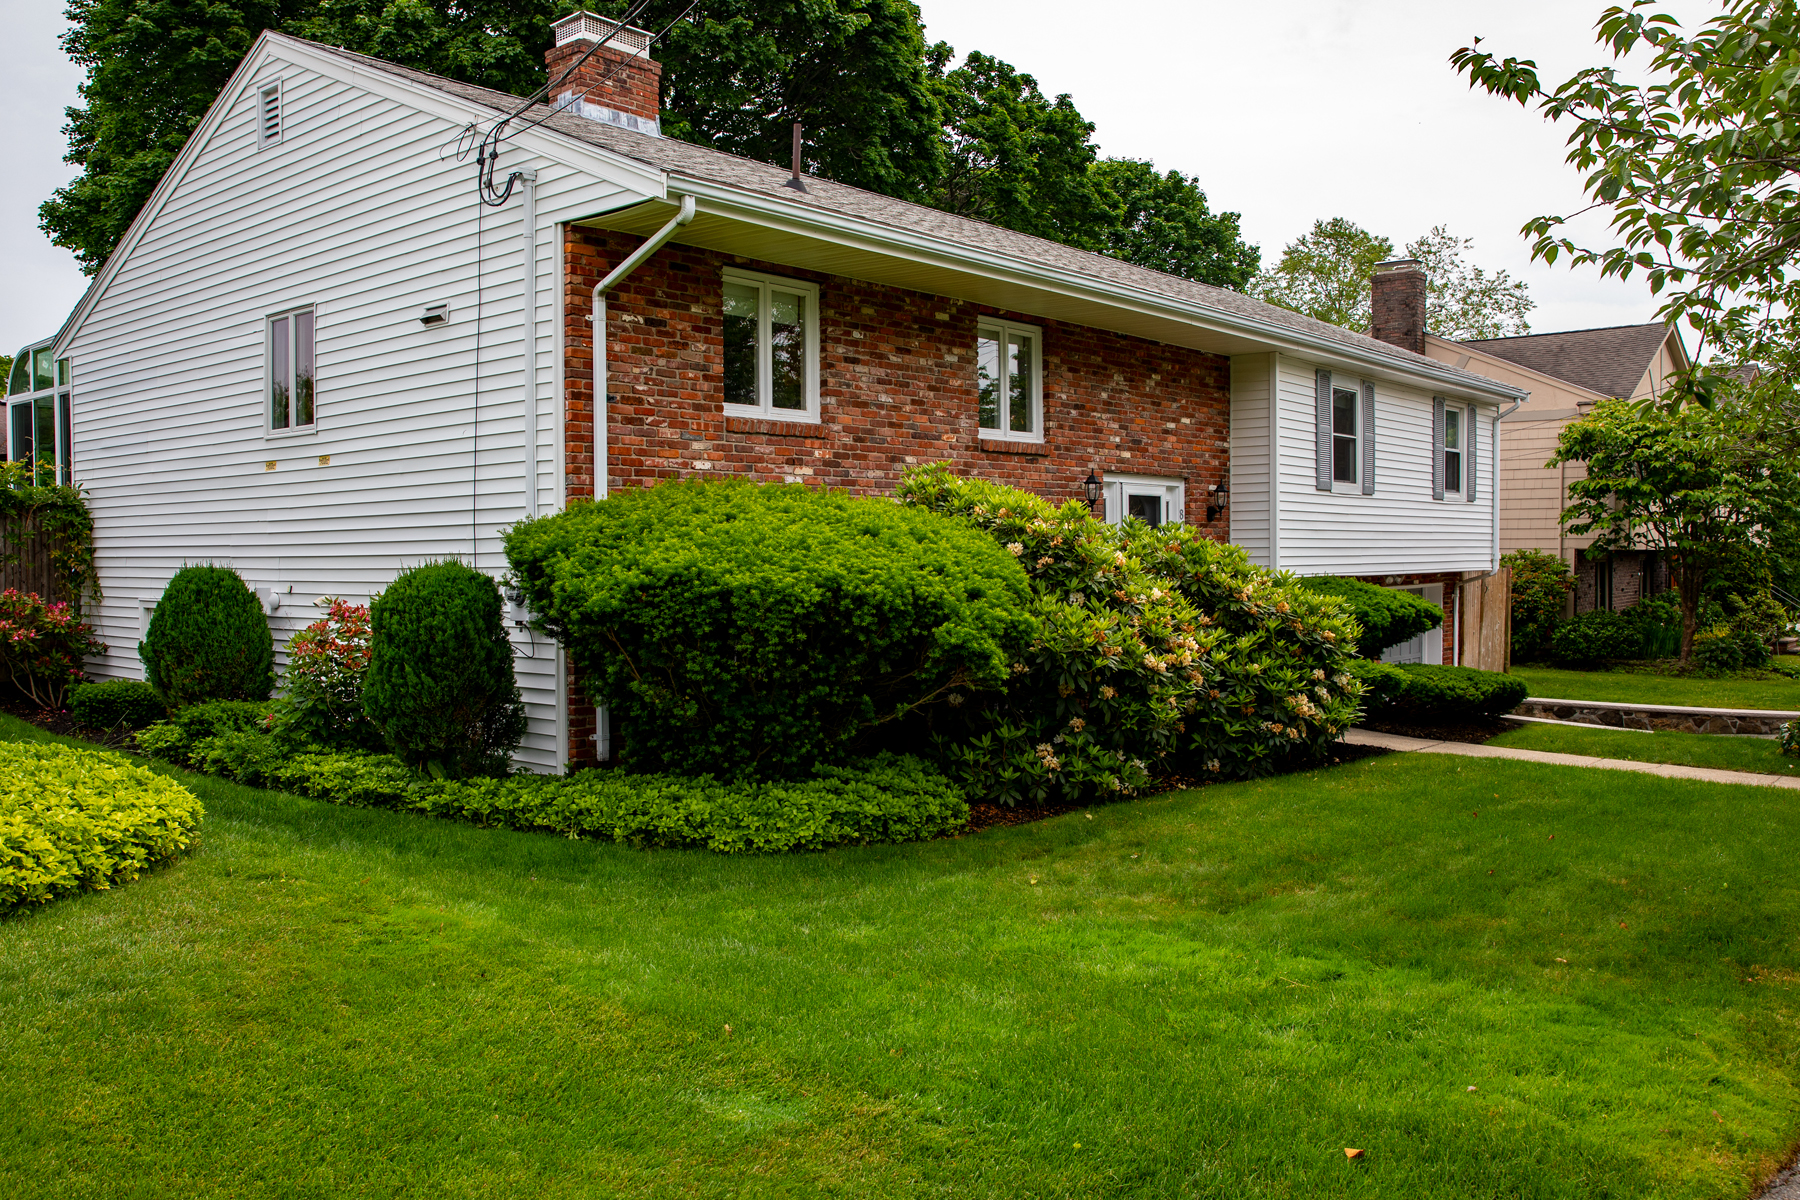 Single Family Homes for Active at Immaculate 4 bedroom contemporary 8 Priscilla Road Swampscott, Massachusetts 01907 United States